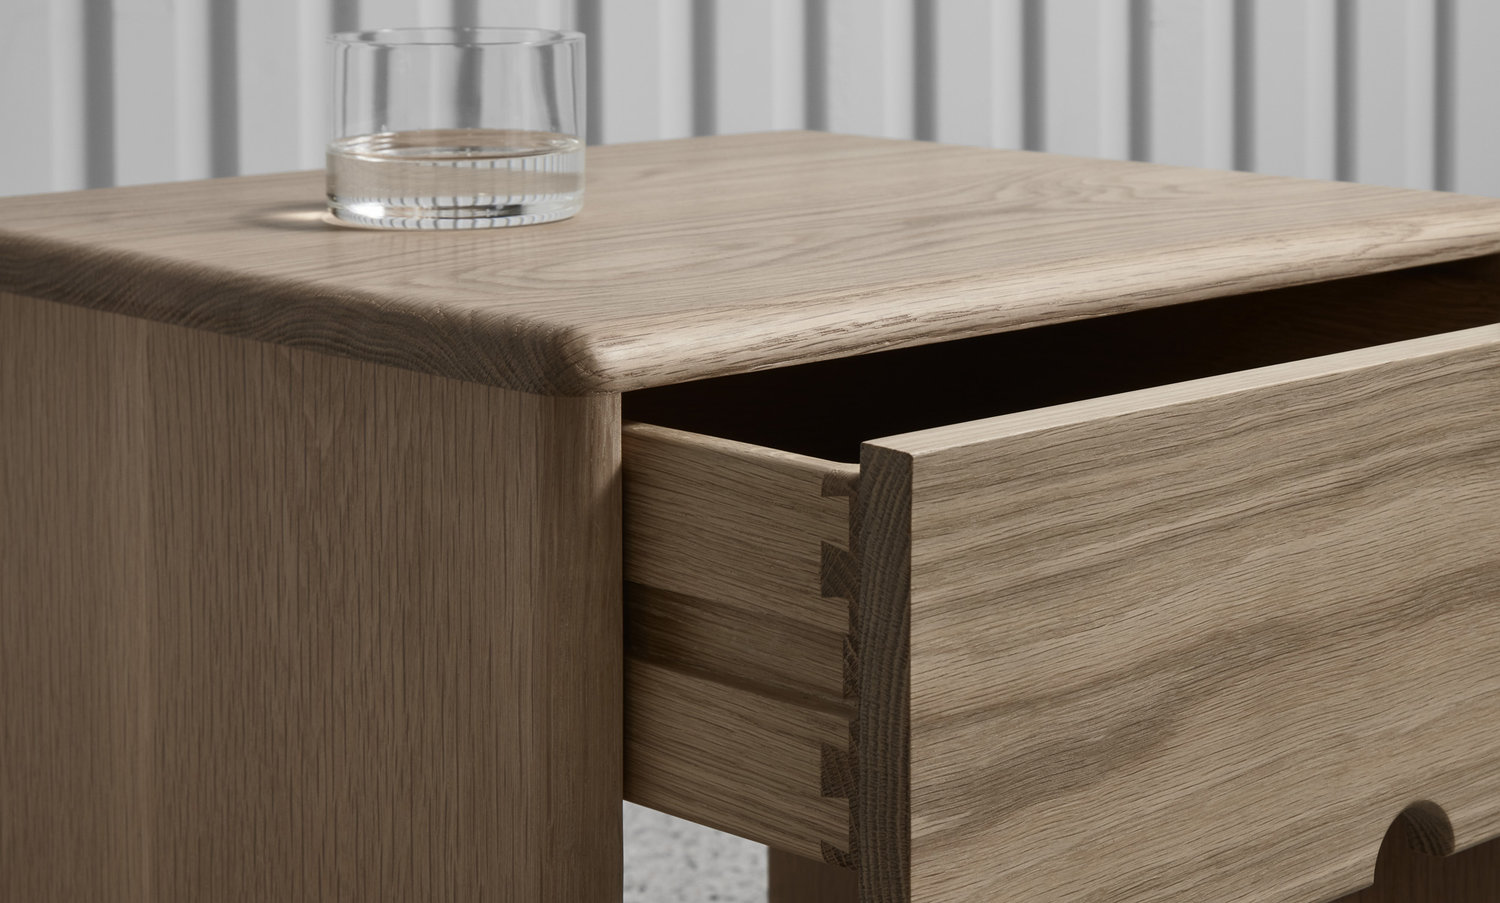 The LIL is crafted from sustainably sourced solid American oak timber making it environmentally friendly as well as stylish.